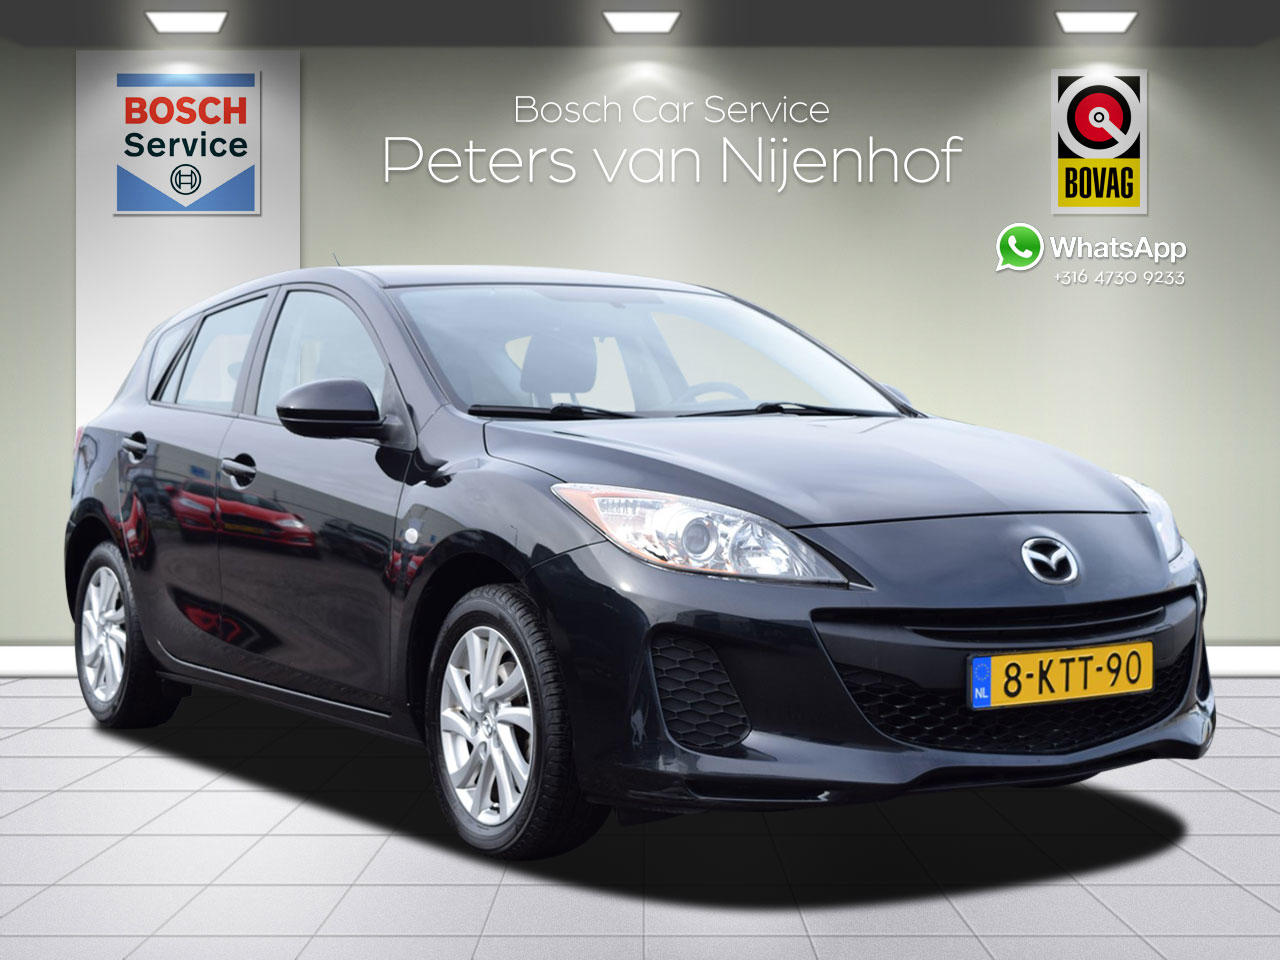 Mazda 3 1.6 cool 5drs clima cruise 105pk 107dkm